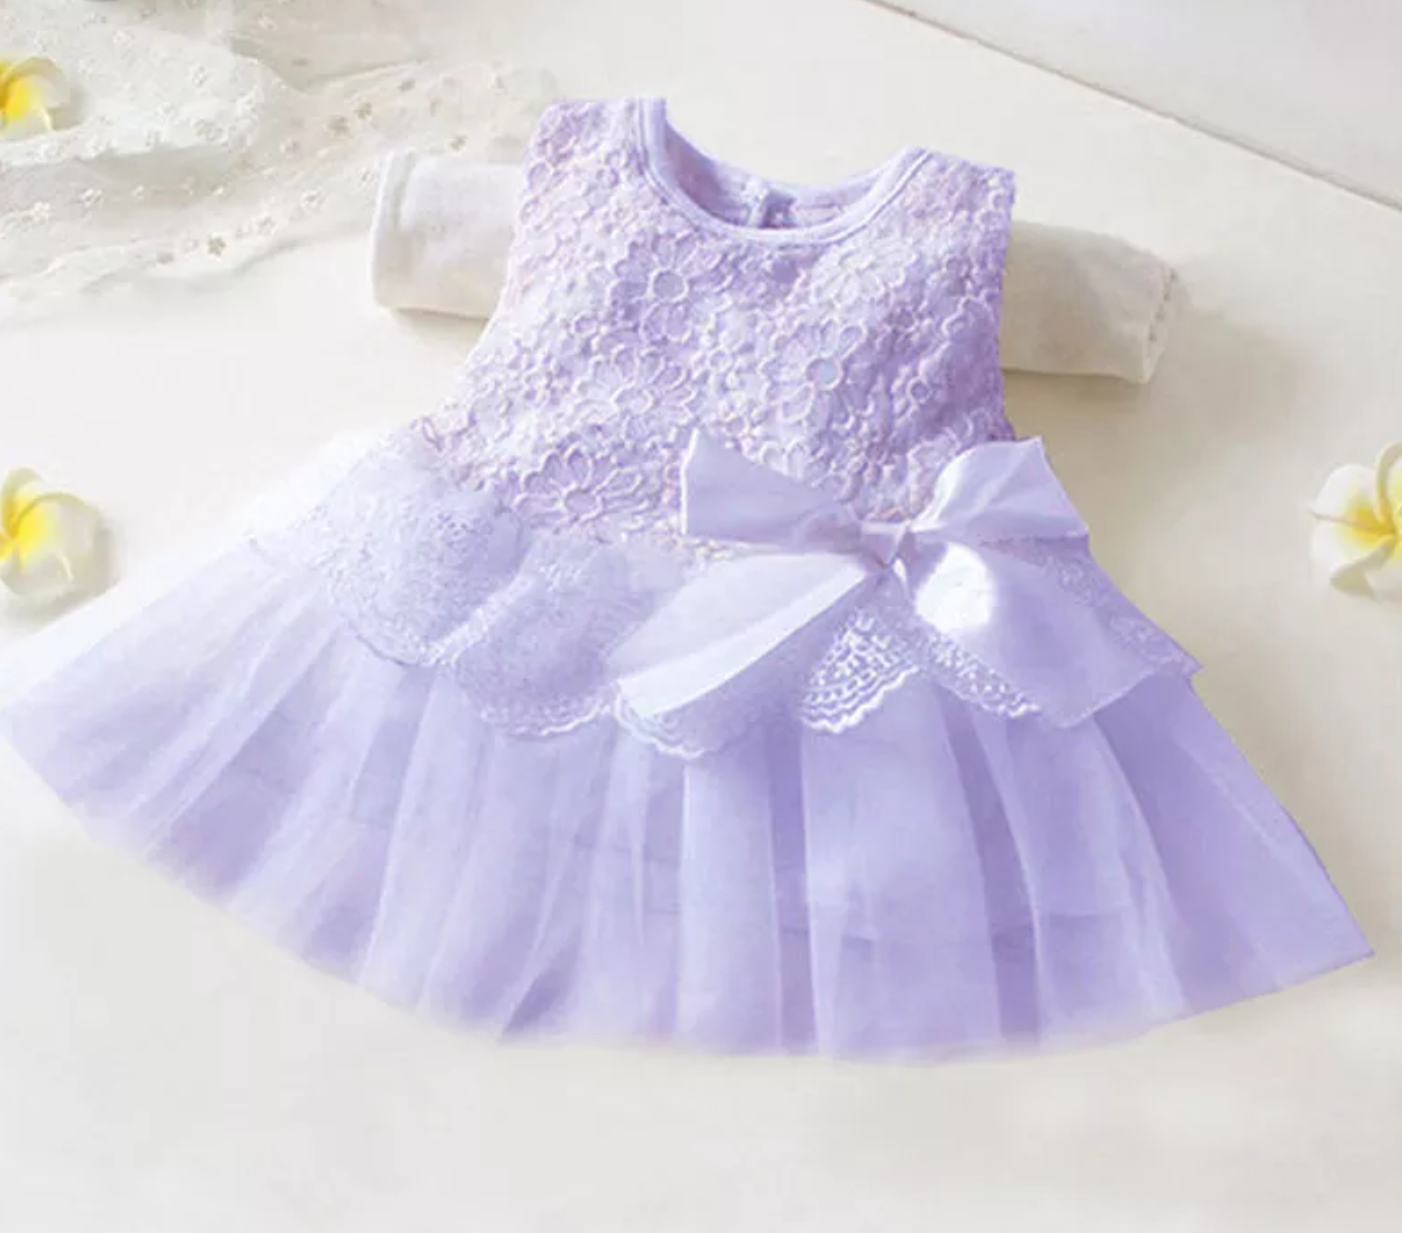 Newborn Baby Girls Sleeveless Princess Party Tutu Lace Bow Flower Petal Dress